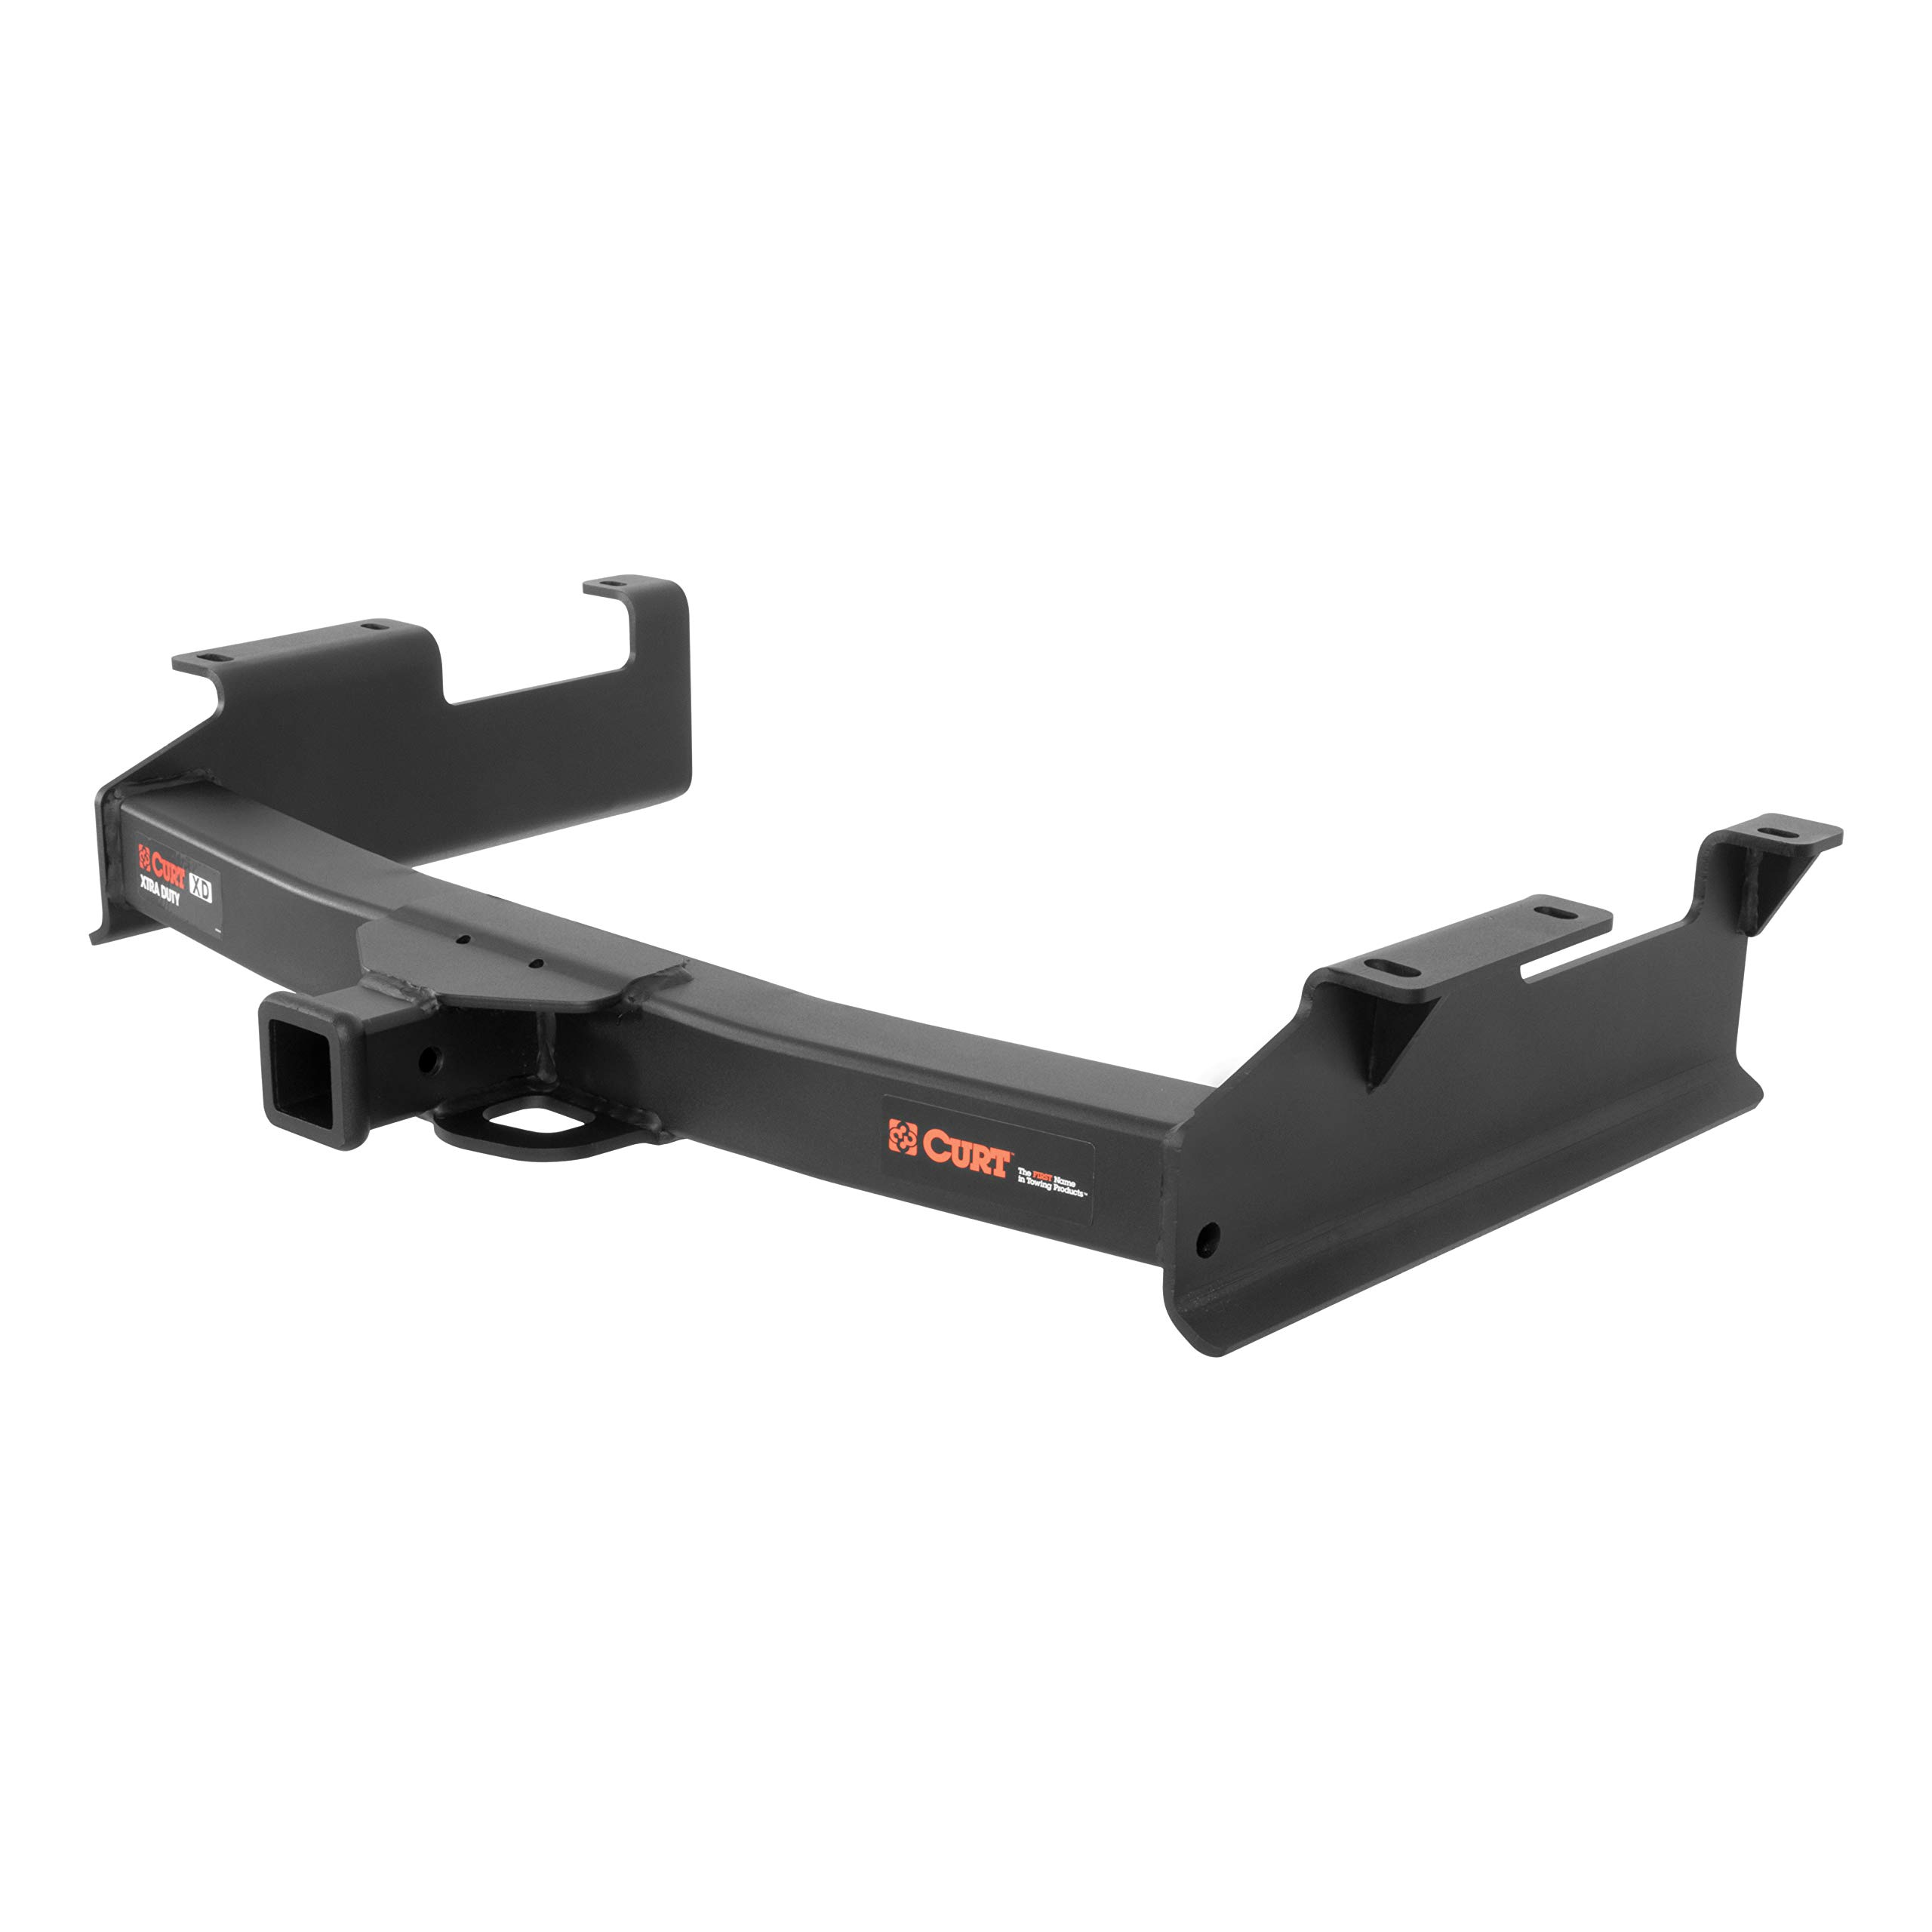 CURT 15312 Xtra Duty Class 5 Trailer Hitch with 2-Inch Receiver, for Select Chevrolet Silverado and GMC Sierra 2500 HD, 3500 HD